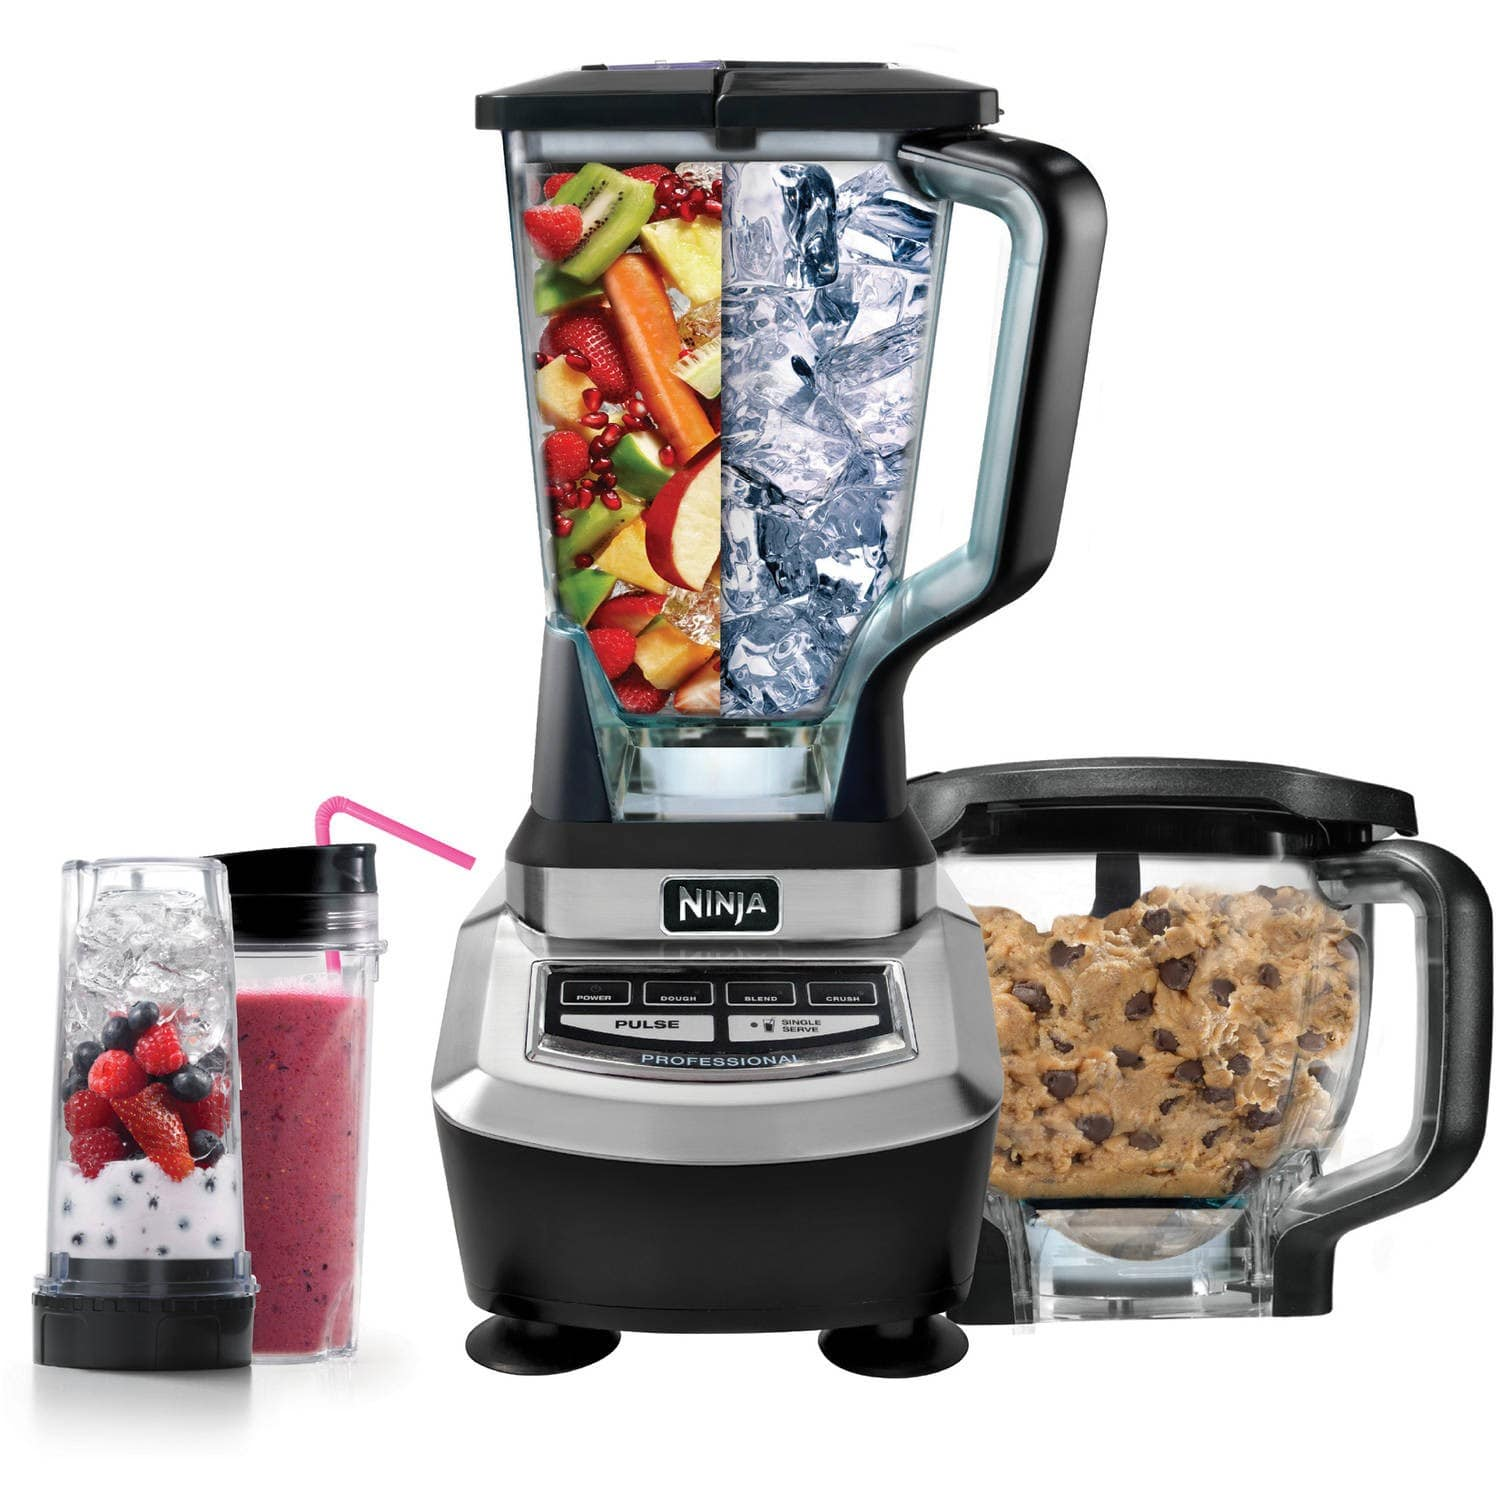 Ninja Supra Kitchen Blender System with Food Processor - $35